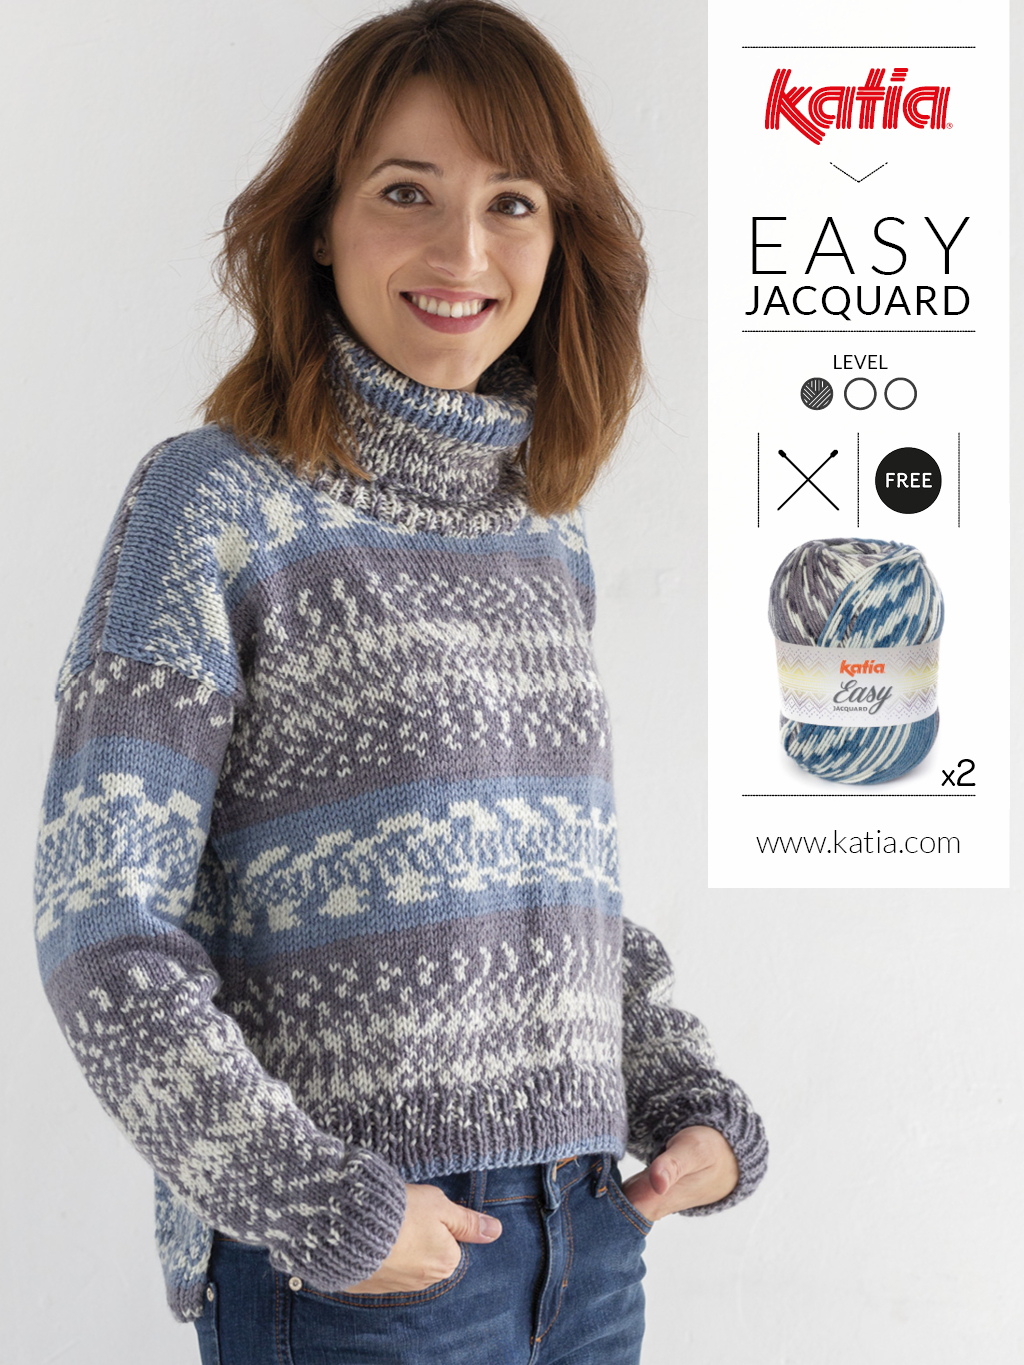 Jersey easy jacquard